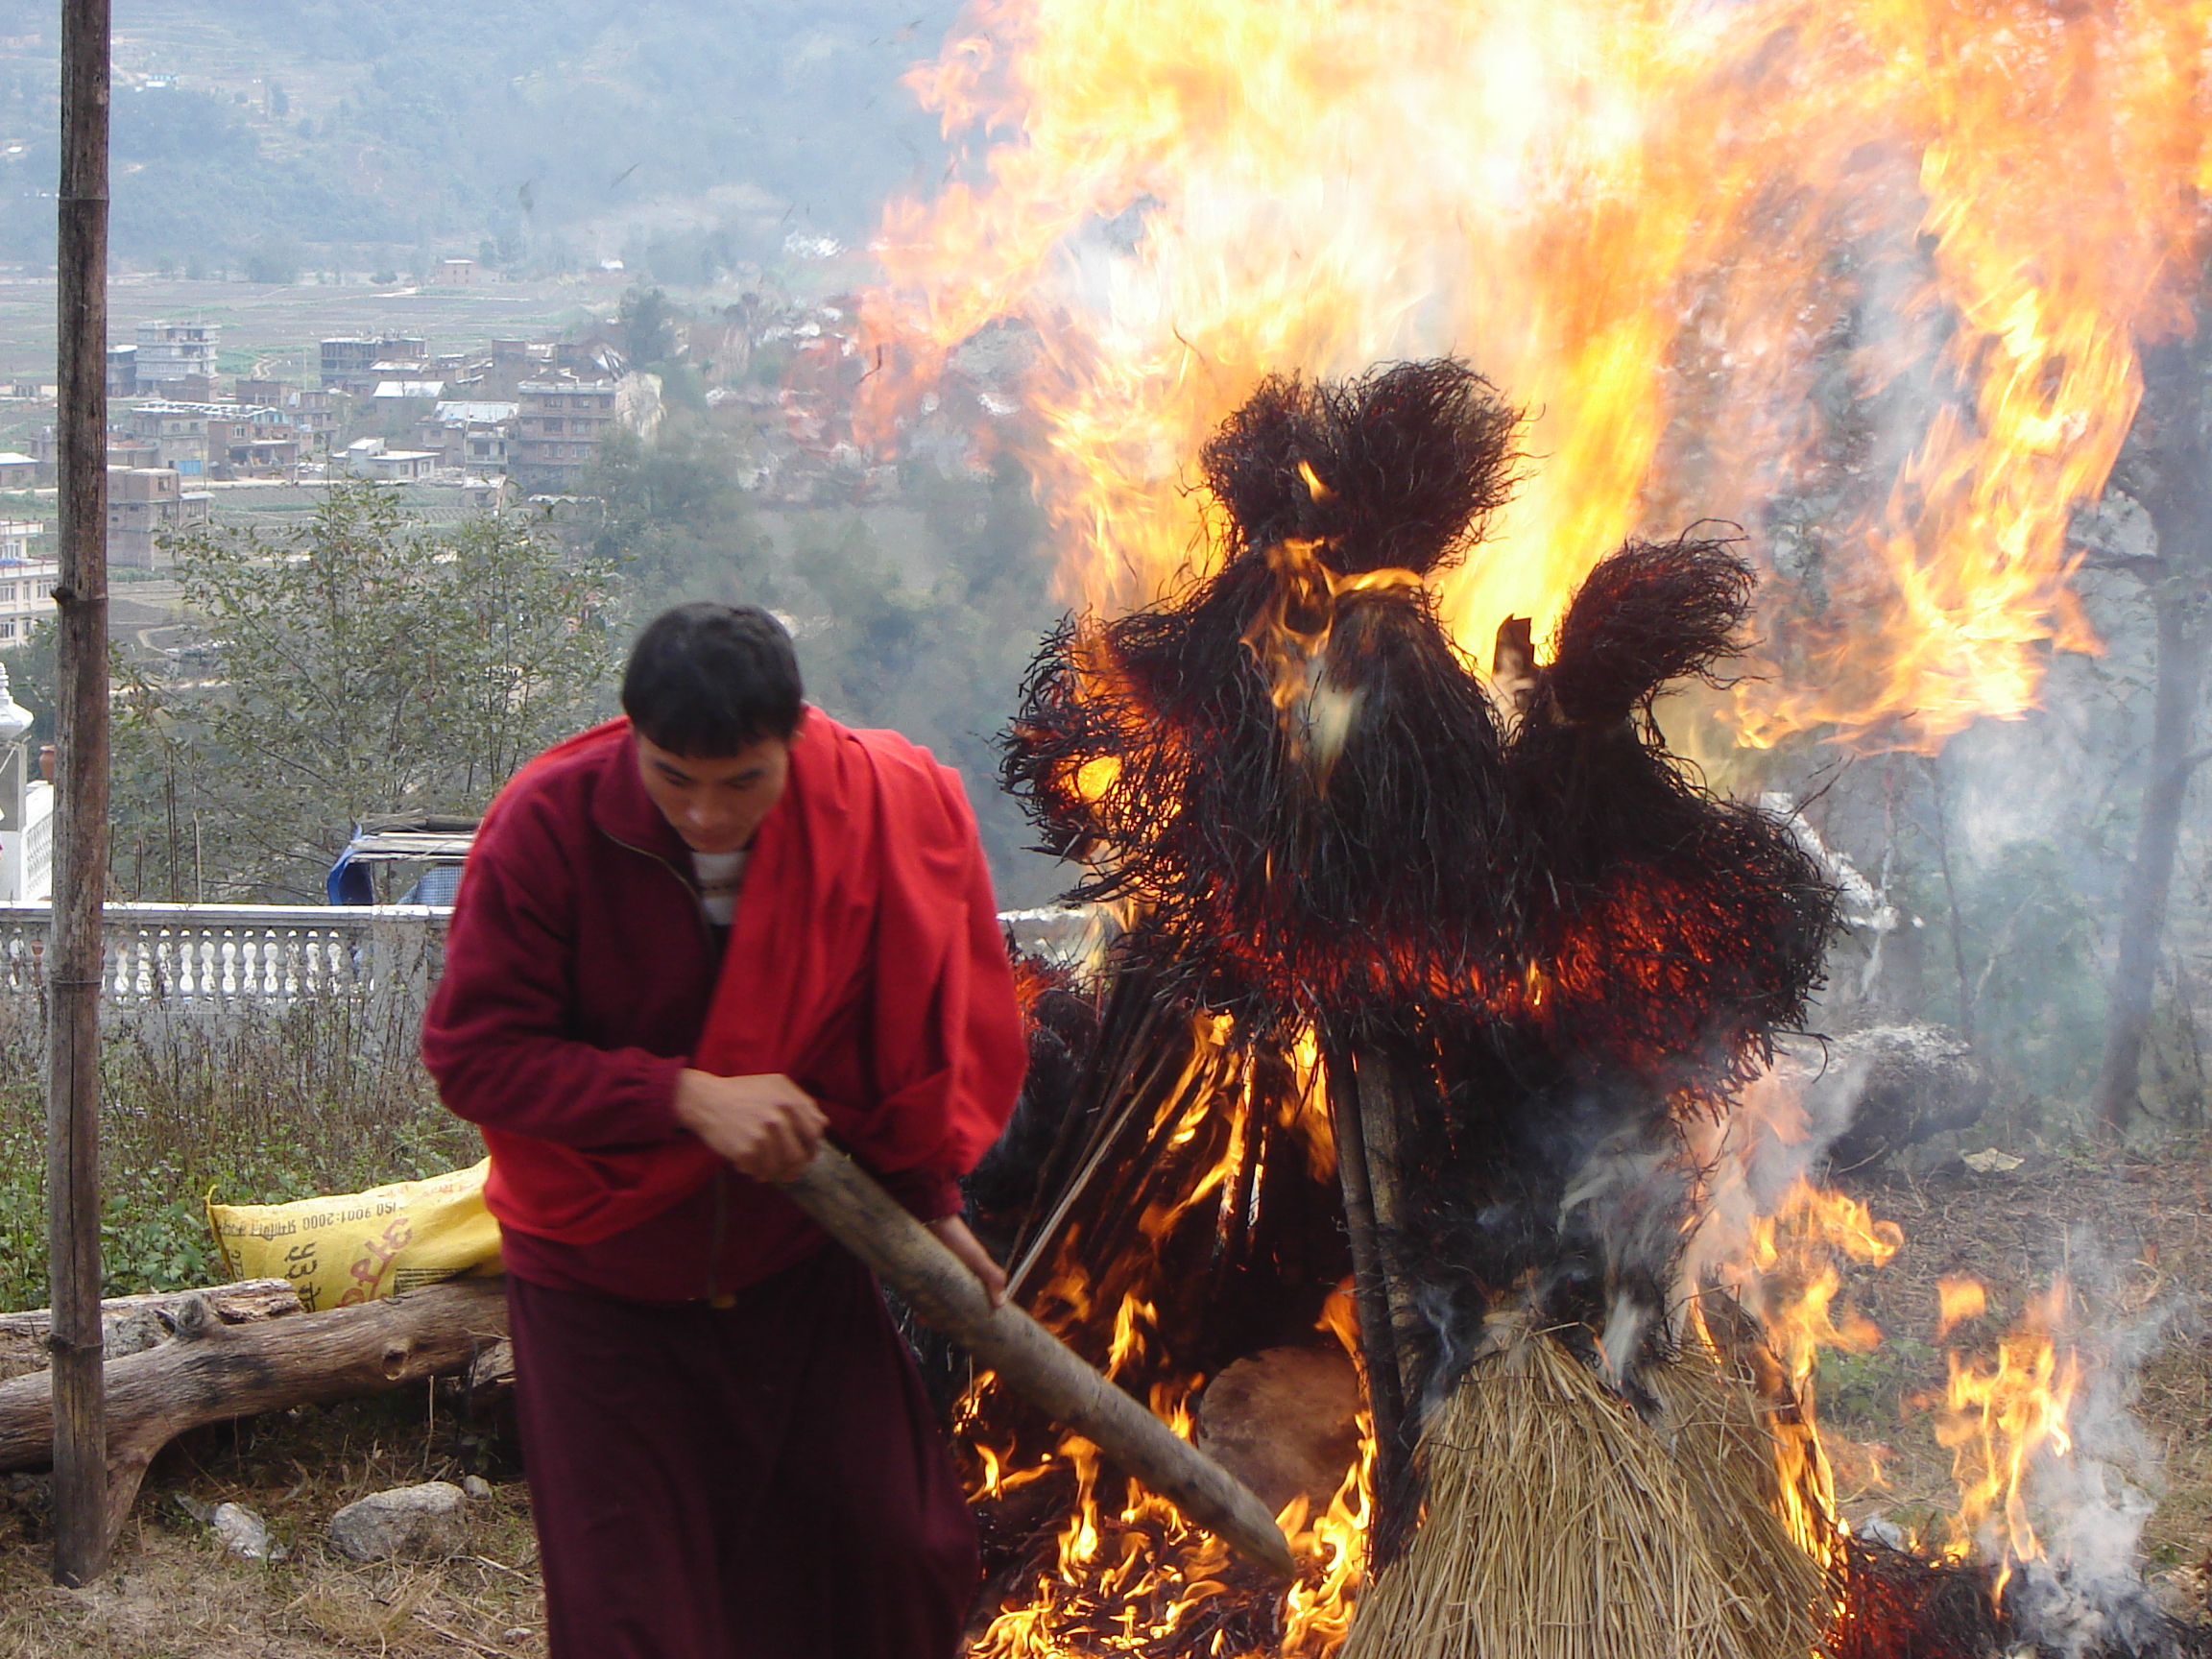 The Torma is cast into the flames